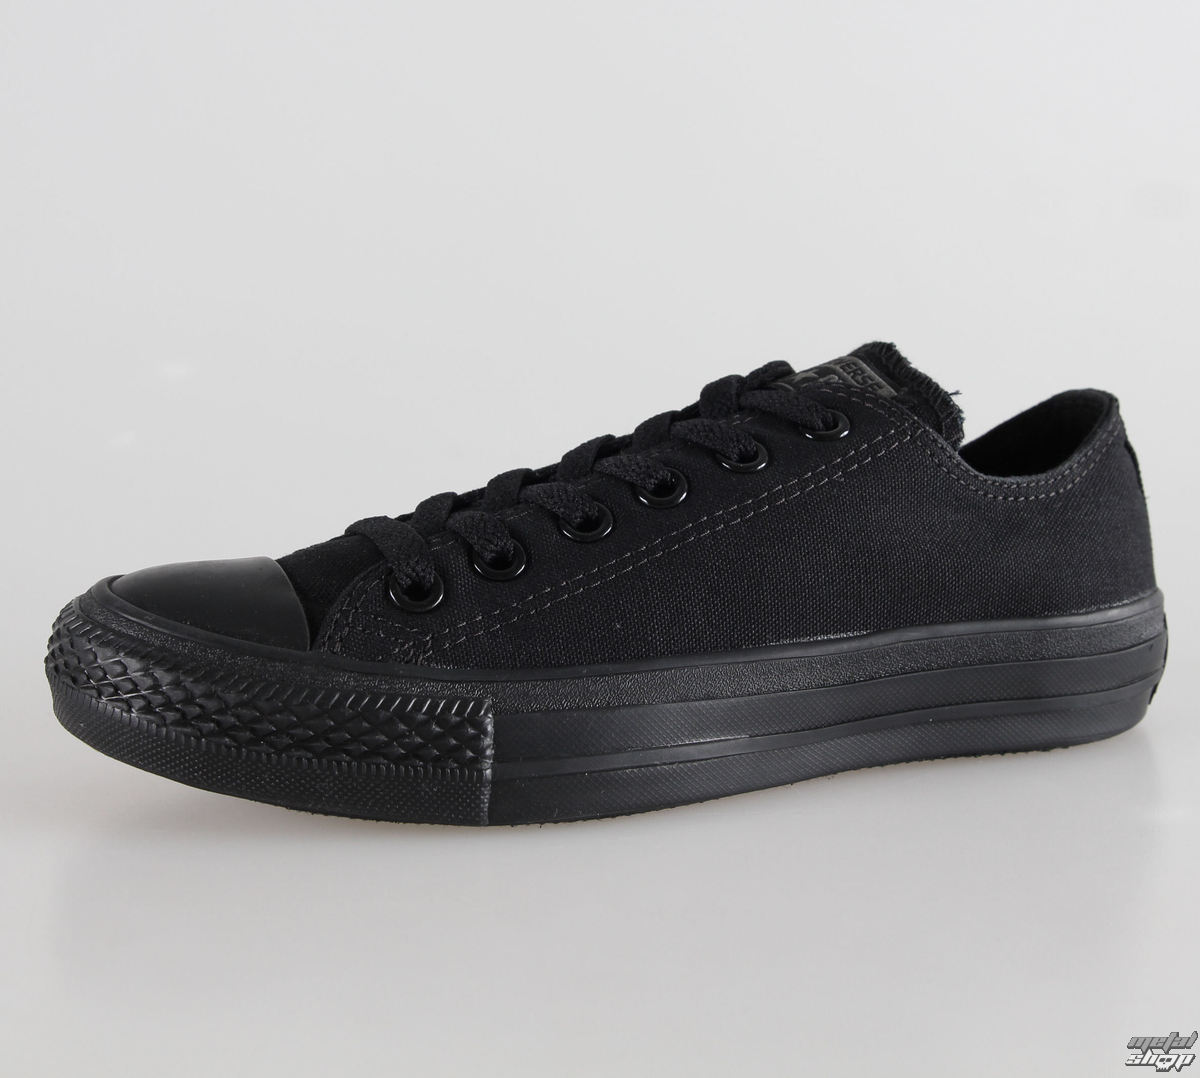 topánky CONVERSE - Chuck Taylor All Star - Black Honocrum - M5039